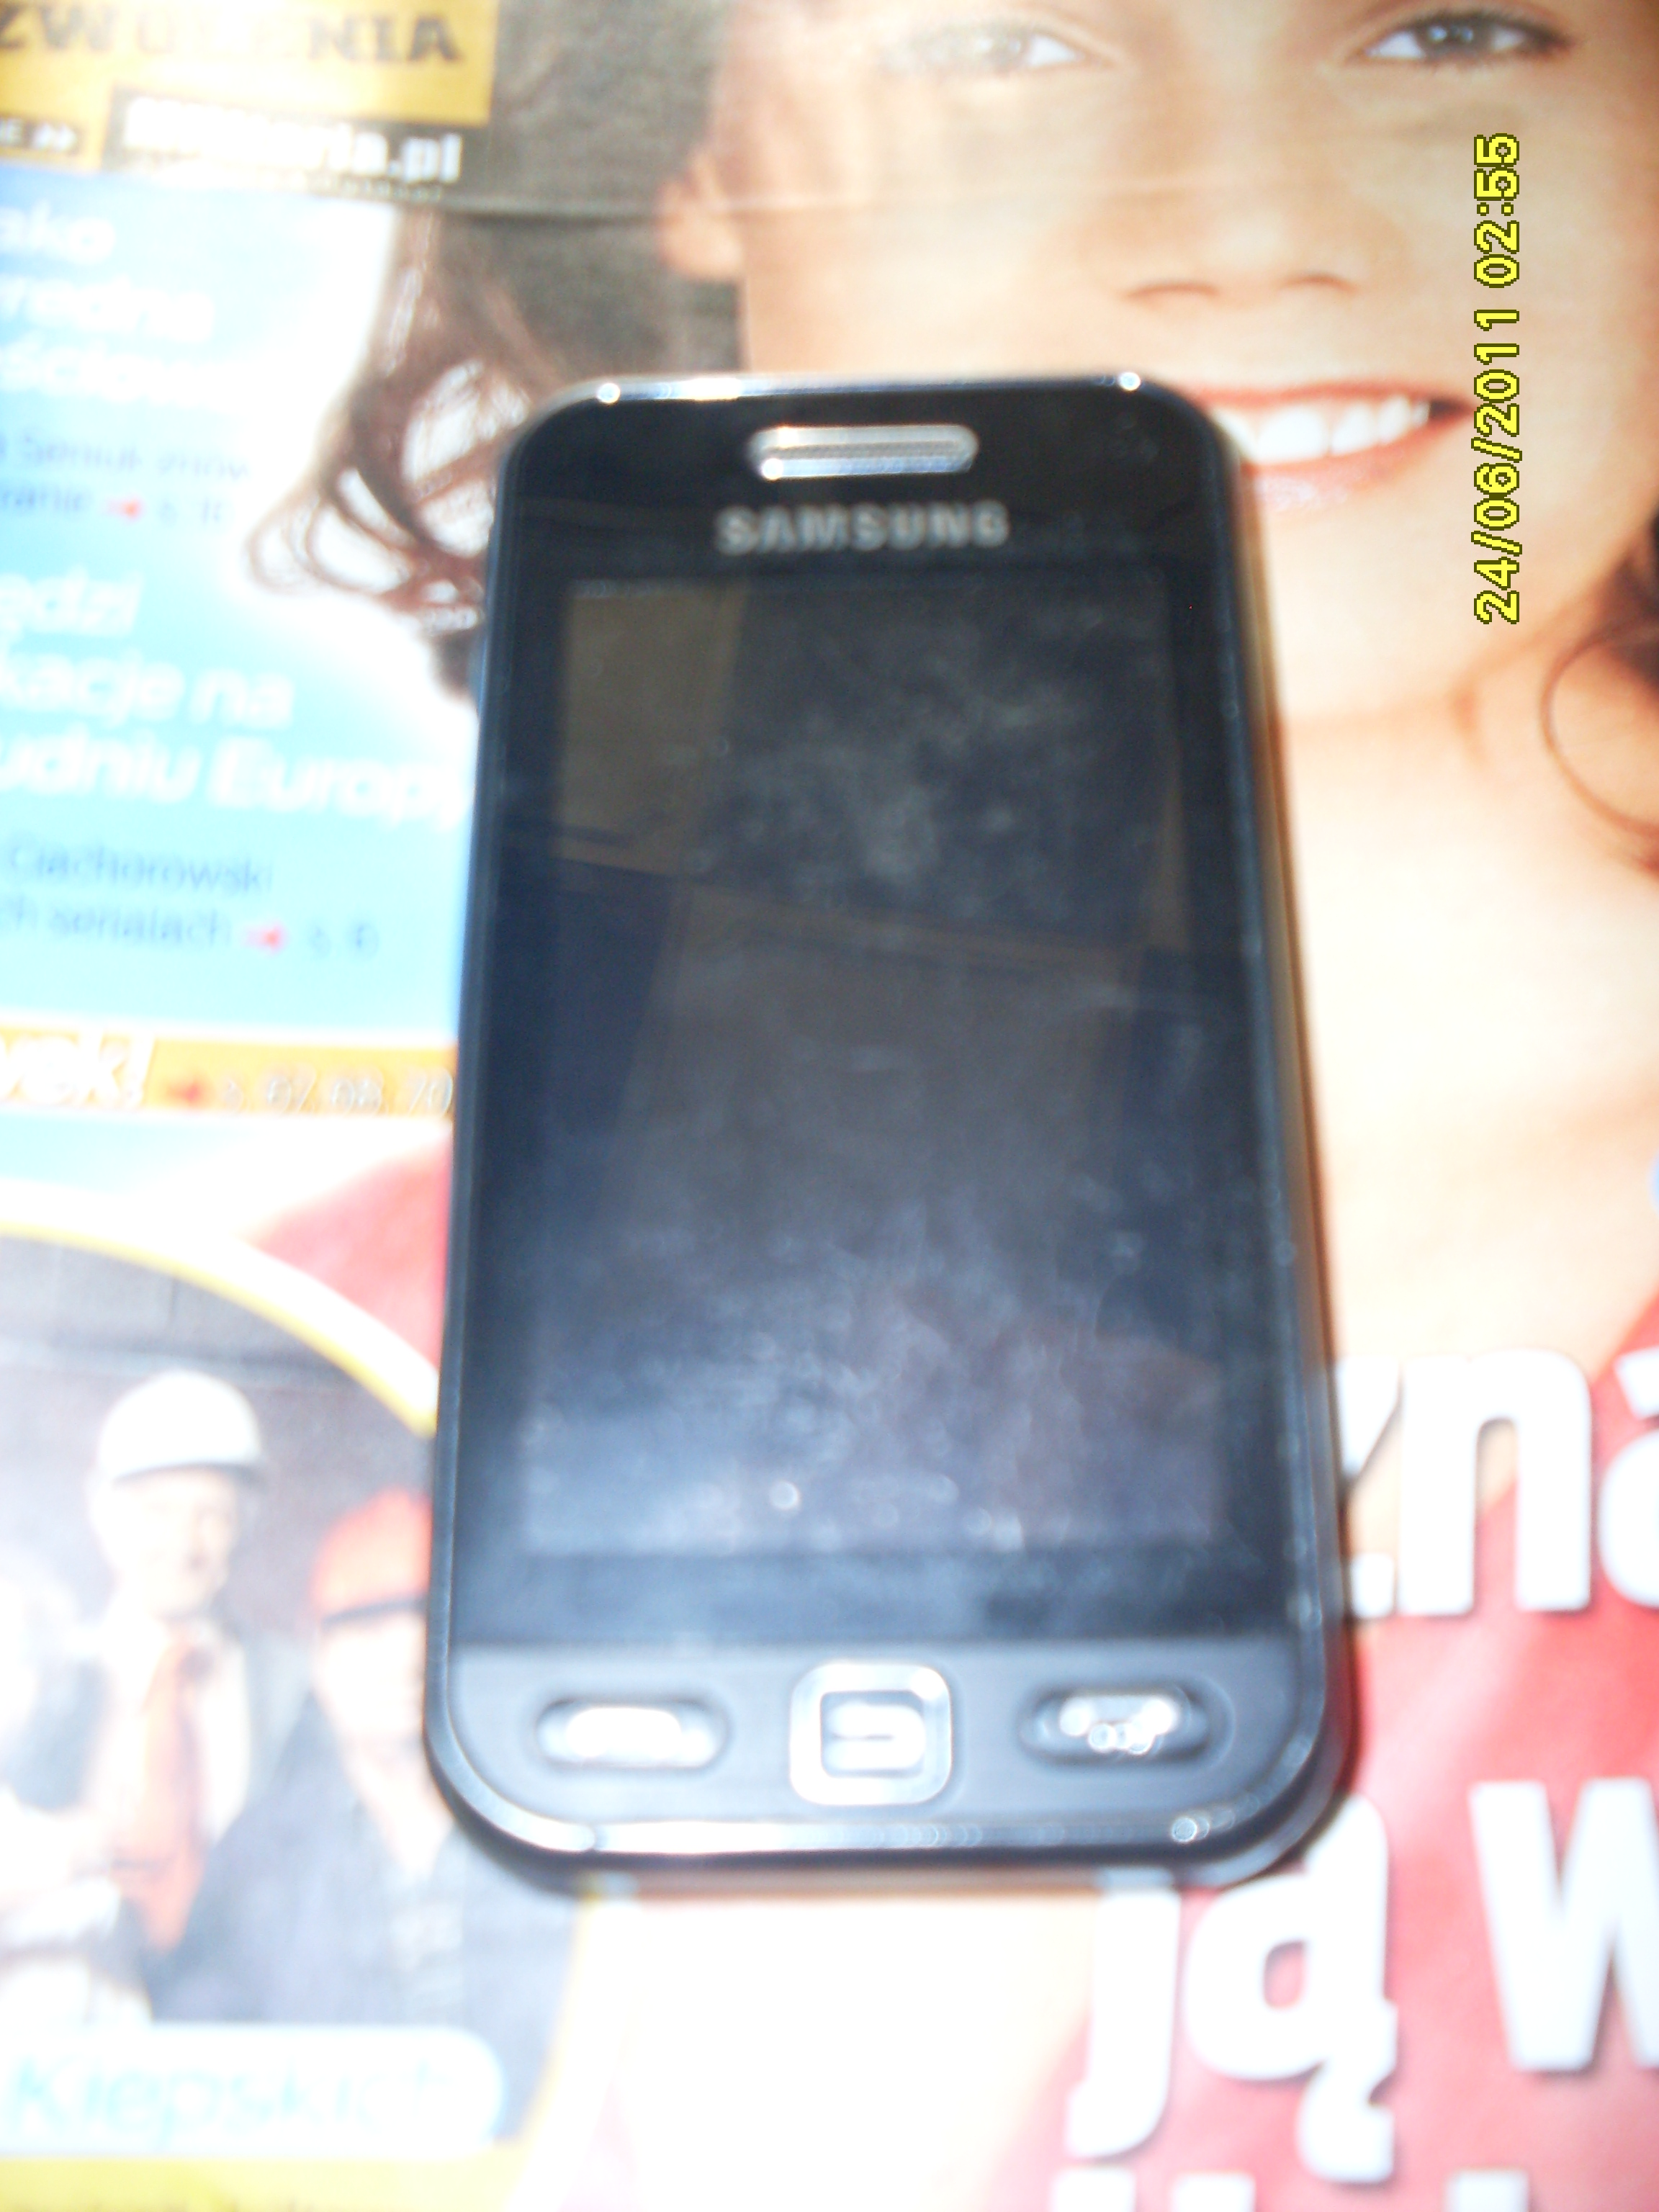 jeux samsung gt-s5230 edge quad band